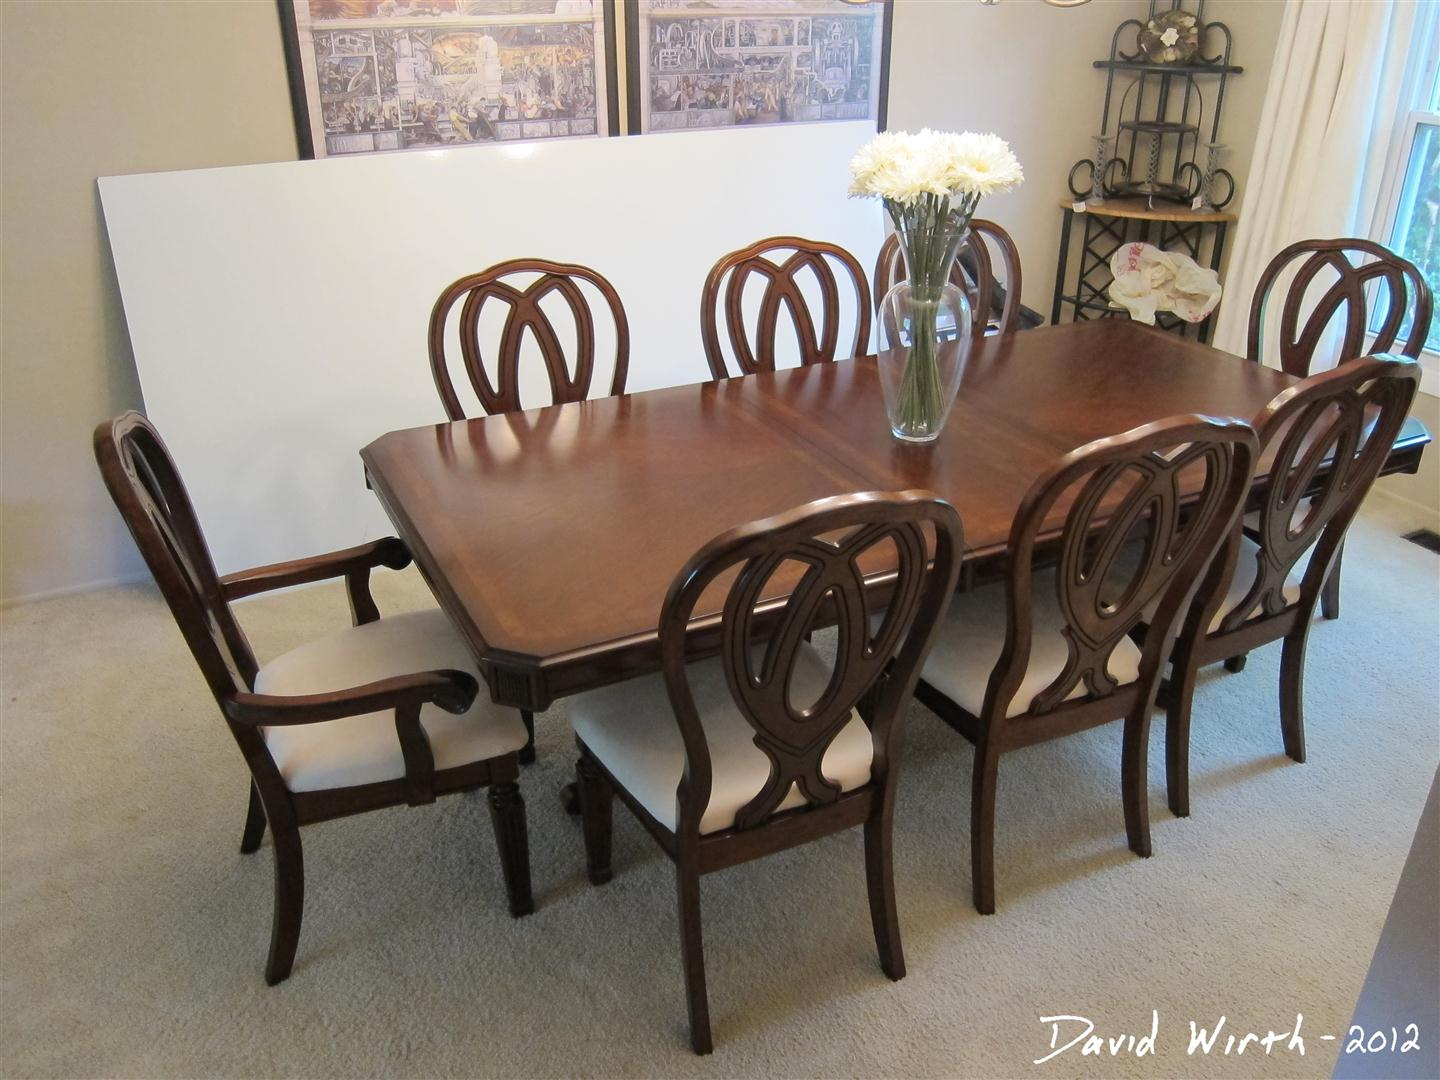 New dining room table and chairs for Dining room table chairs